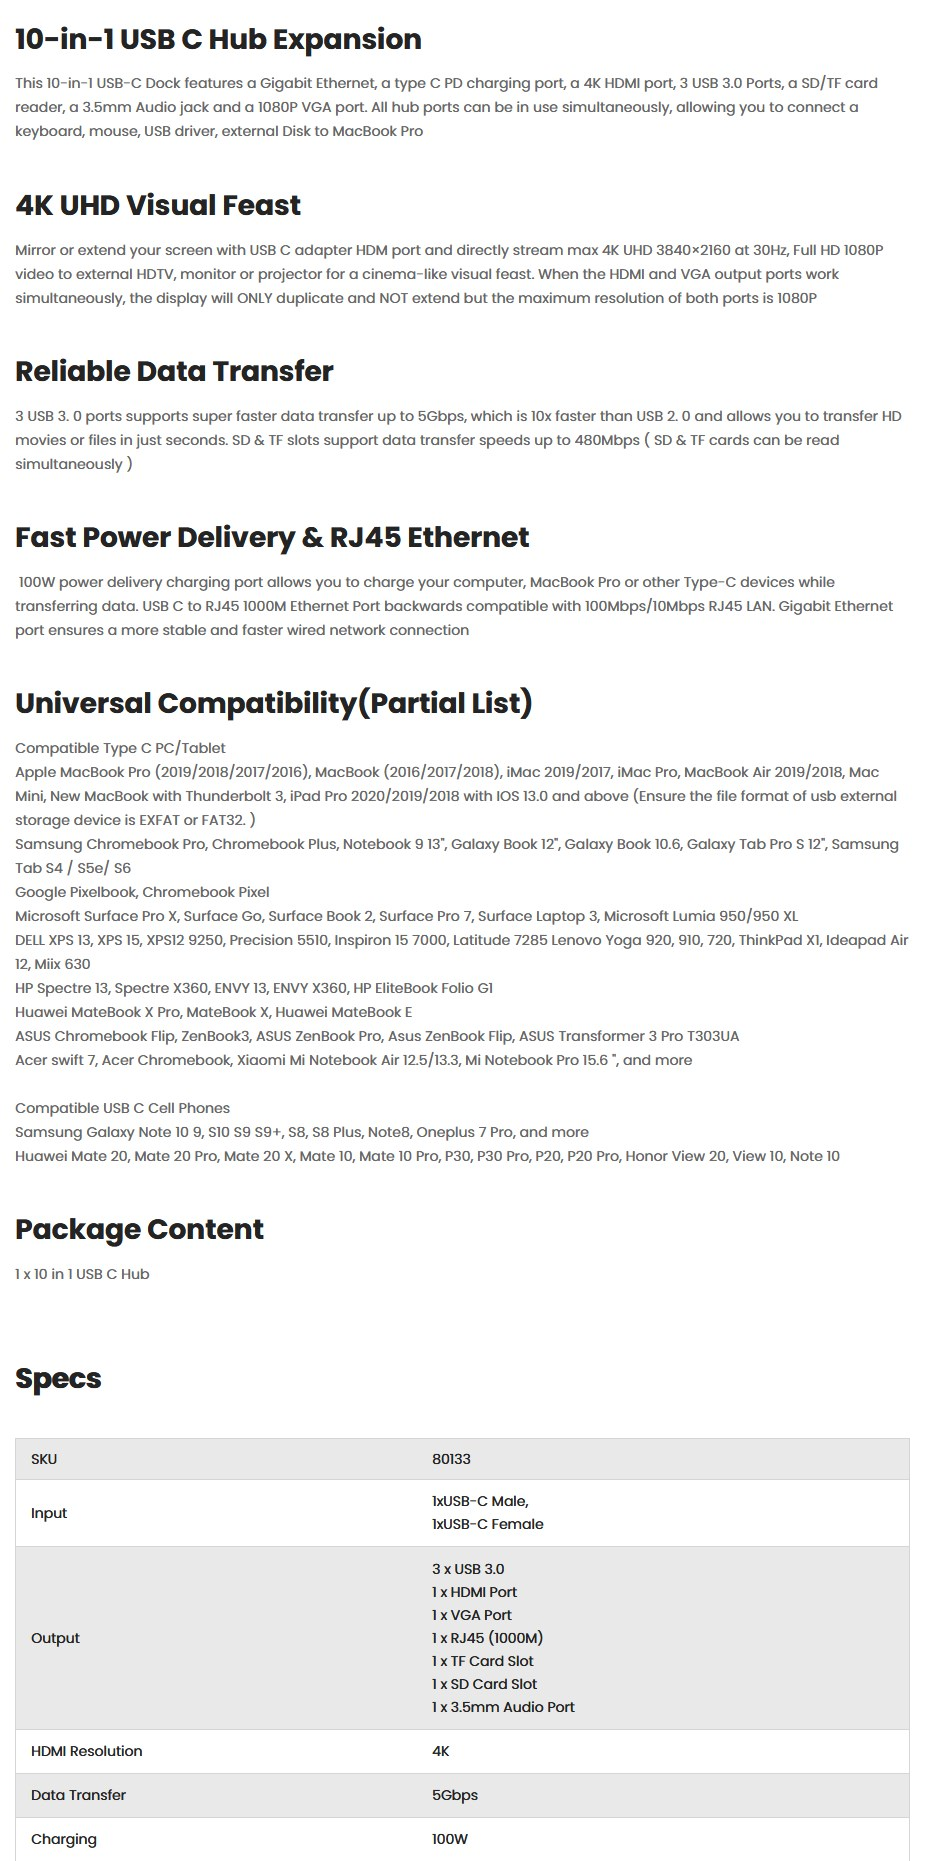 Ugreen 80133 USB-C 10-in-1 Hub Expansion - Overview 1